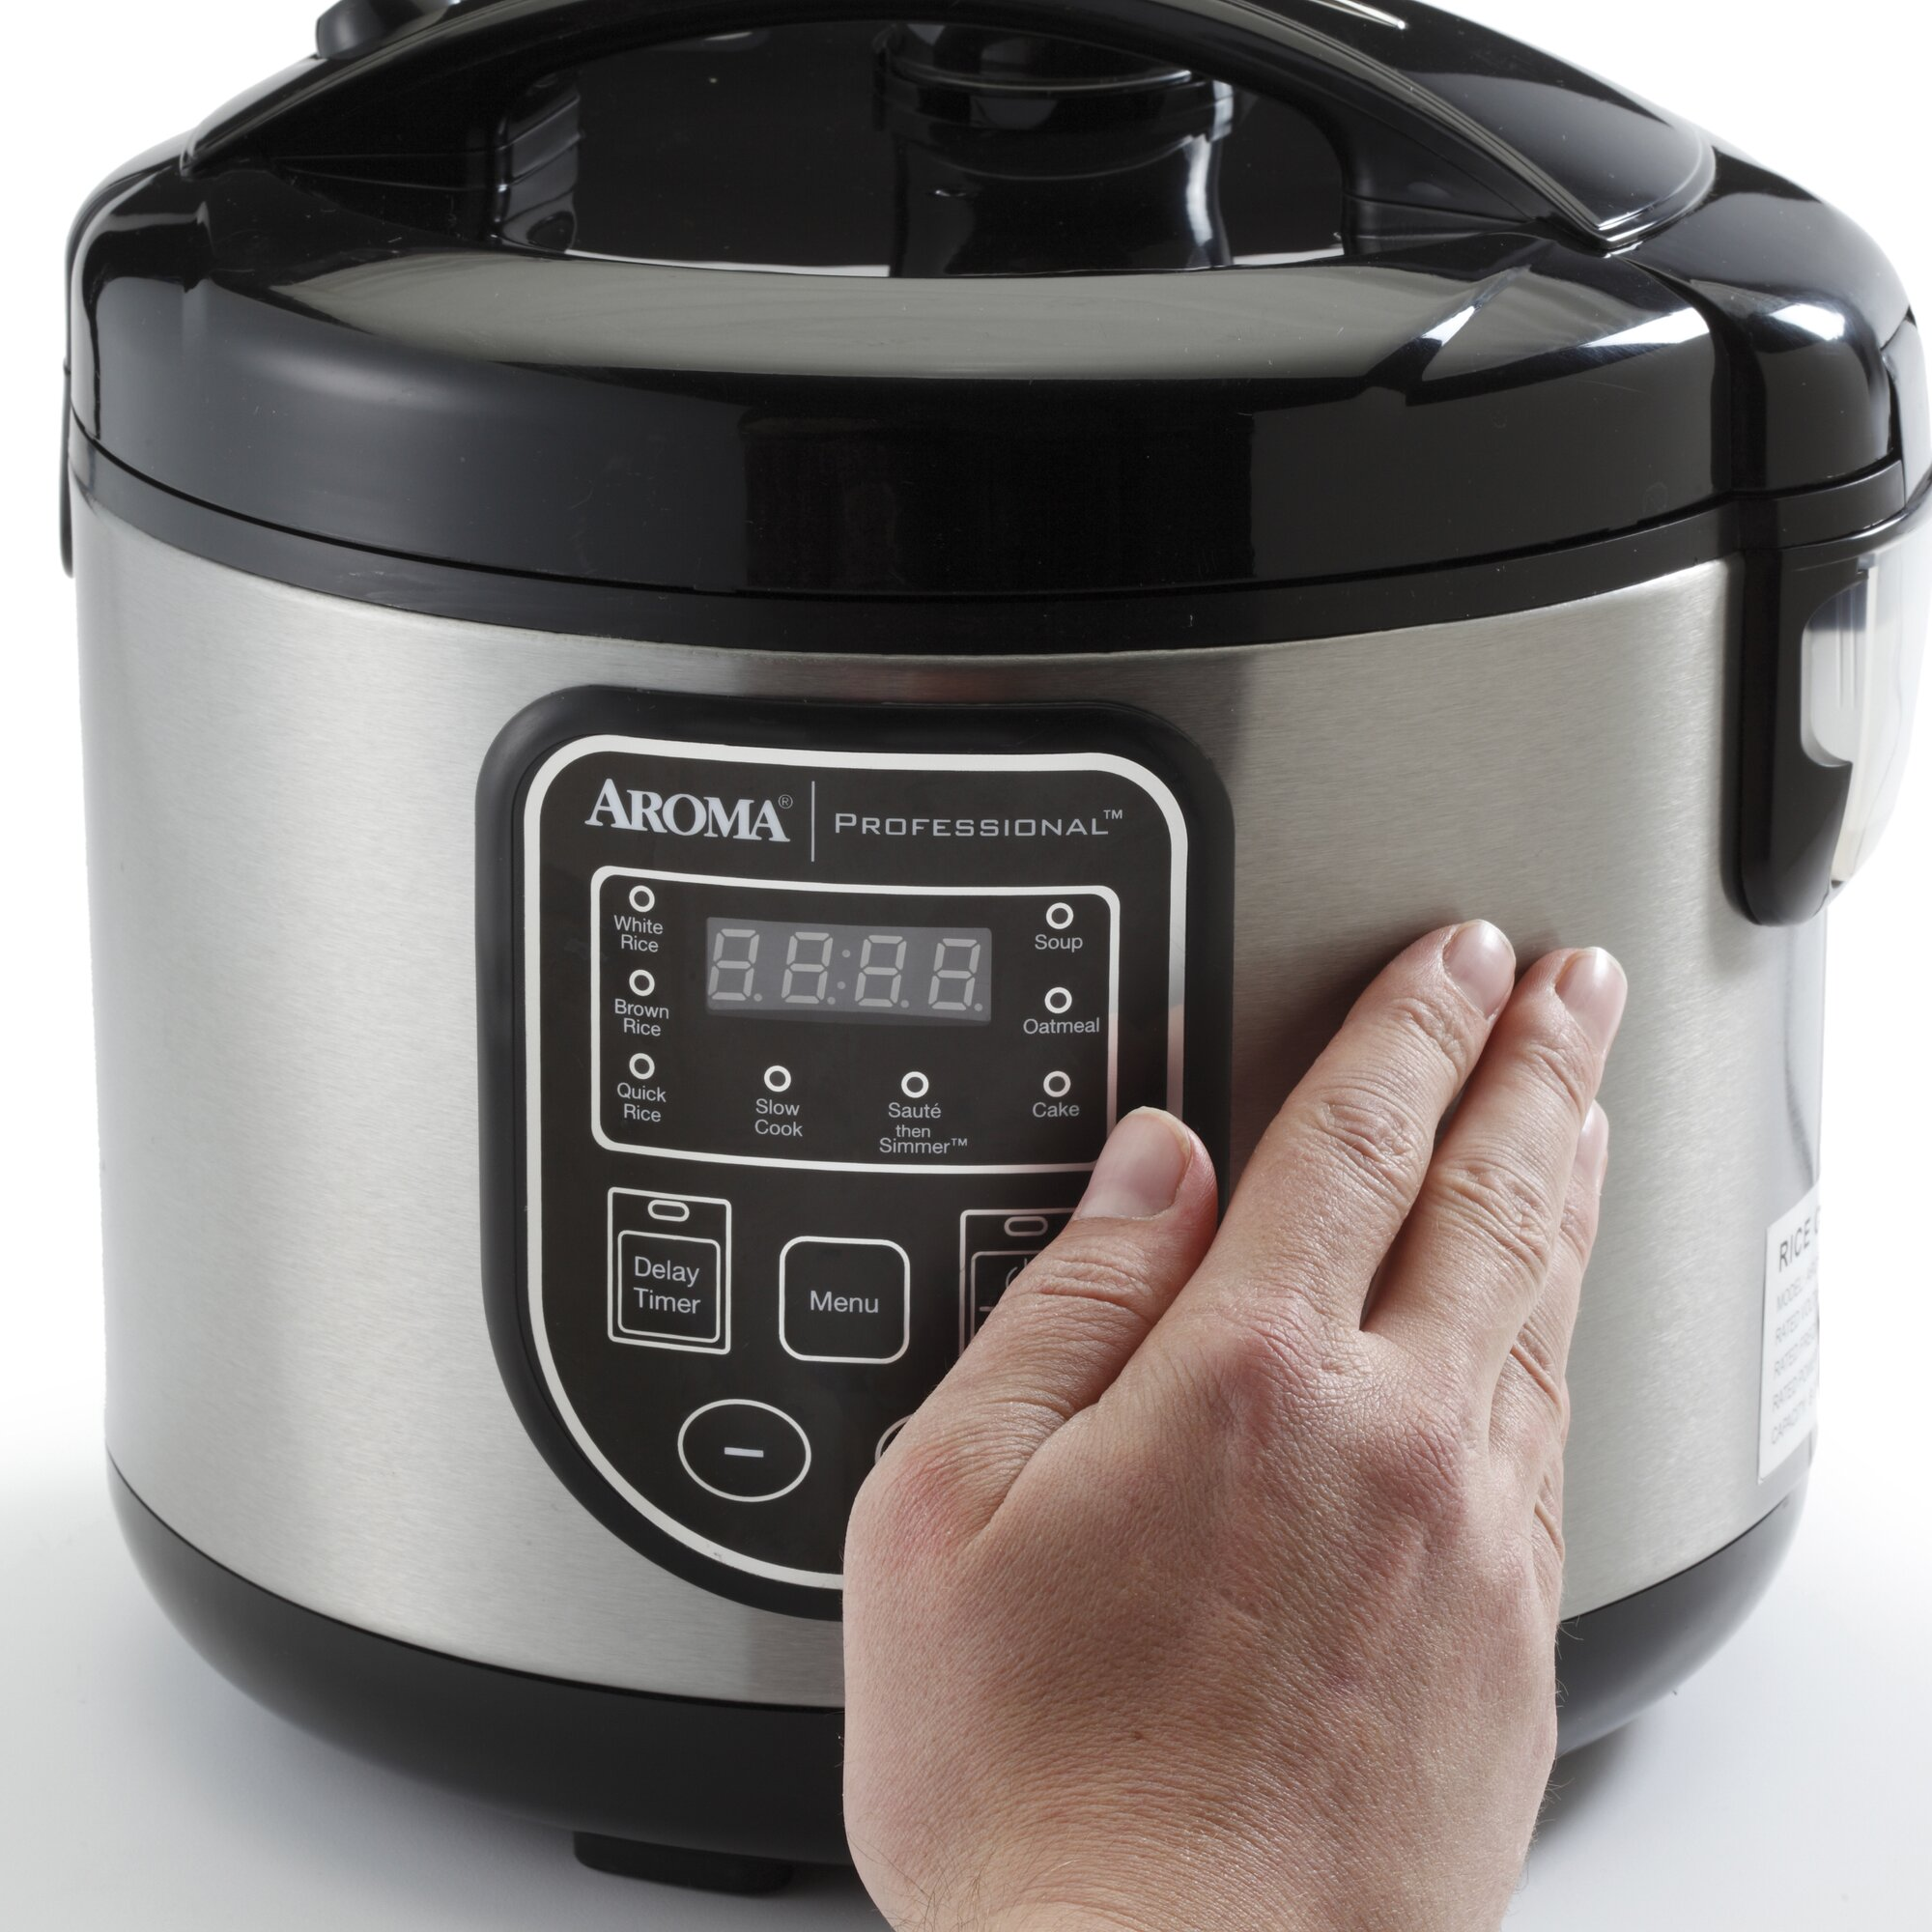 aroma 16 cup professional digital rice cooker slow cooker. Black Bedroom Furniture Sets. Home Design Ideas